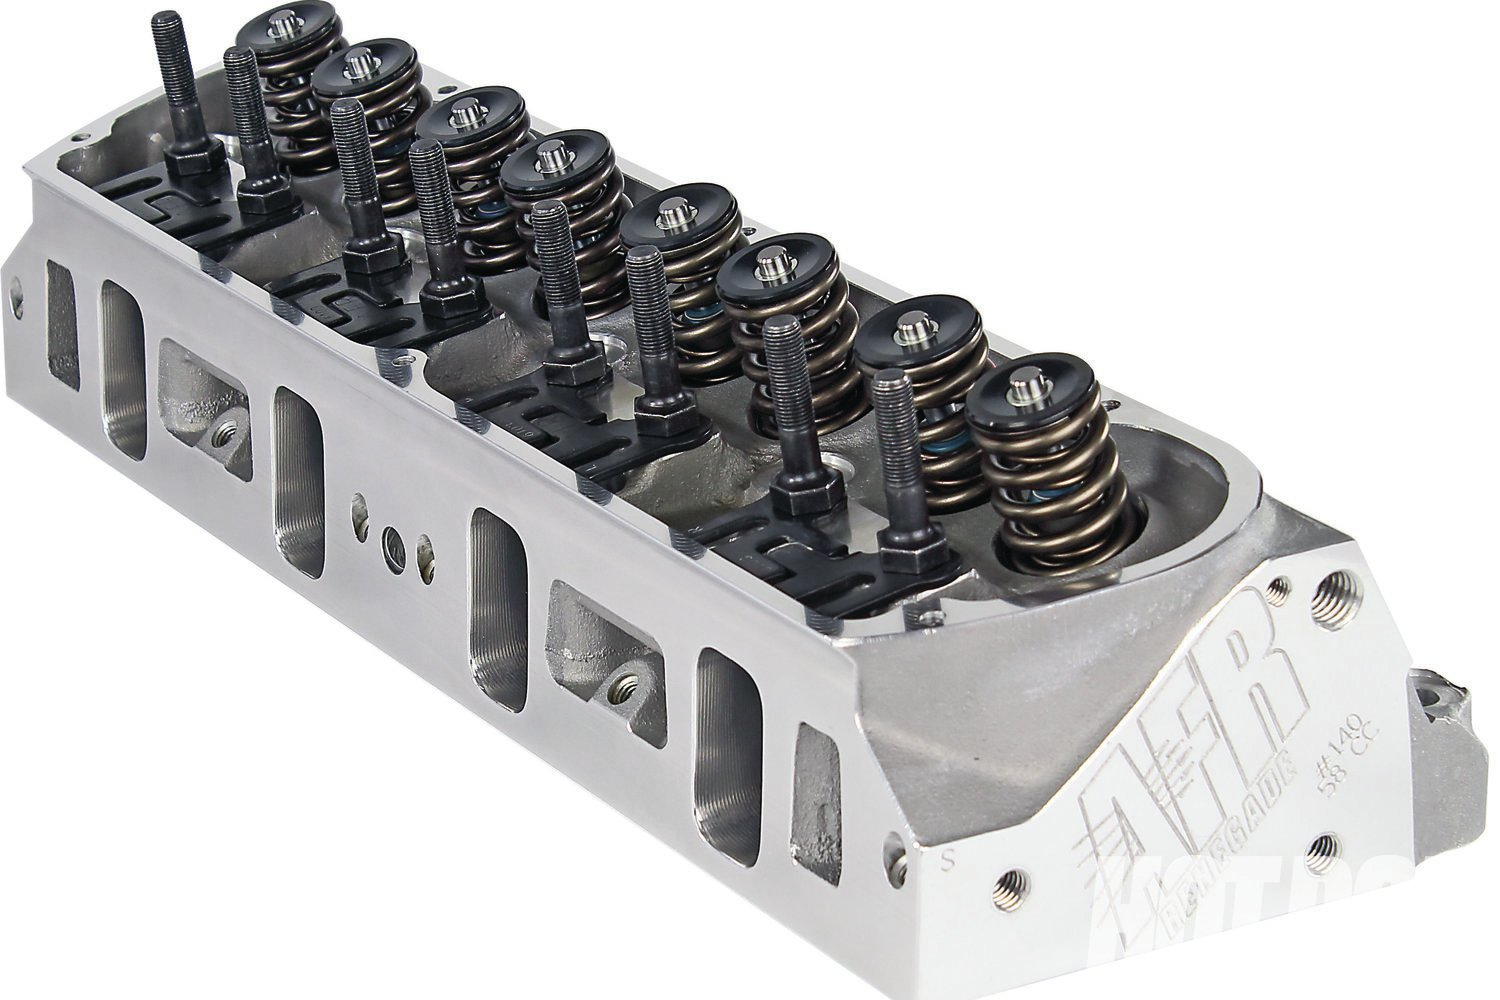 A ground-up redesign, AFR's new 185cc intake-runner Renegade 20° small-block Ford heads come with lightweight 8mm 2.02-intake/1.600-inch exhaust valves, 58 or 72cc chambers, and 70cc exhaust ports. Recommended usage is on 302–367ci engines operating from 1,500-6,500 rpm. Fully California emissions-legal versions are also available, for those who care.